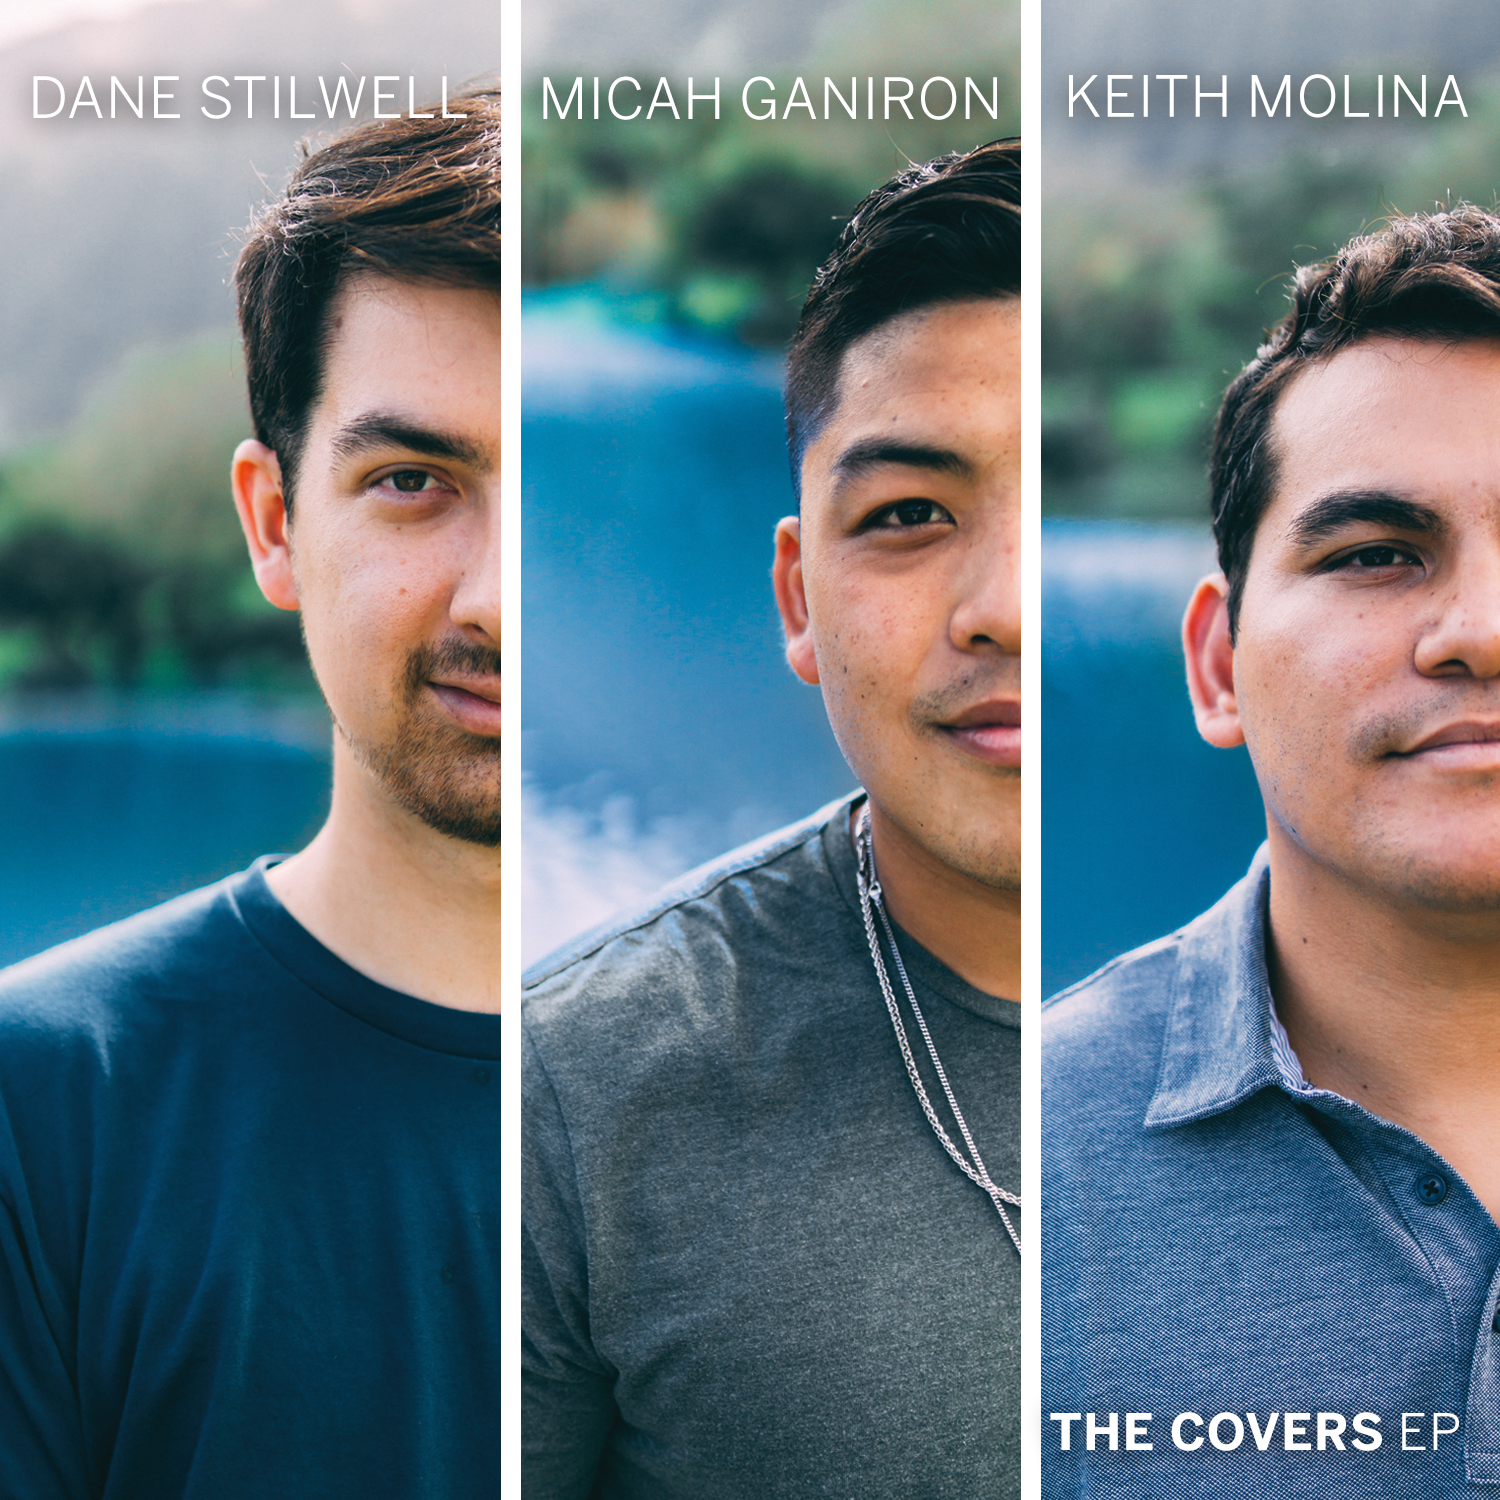 The Covers EP Digital Cover.png